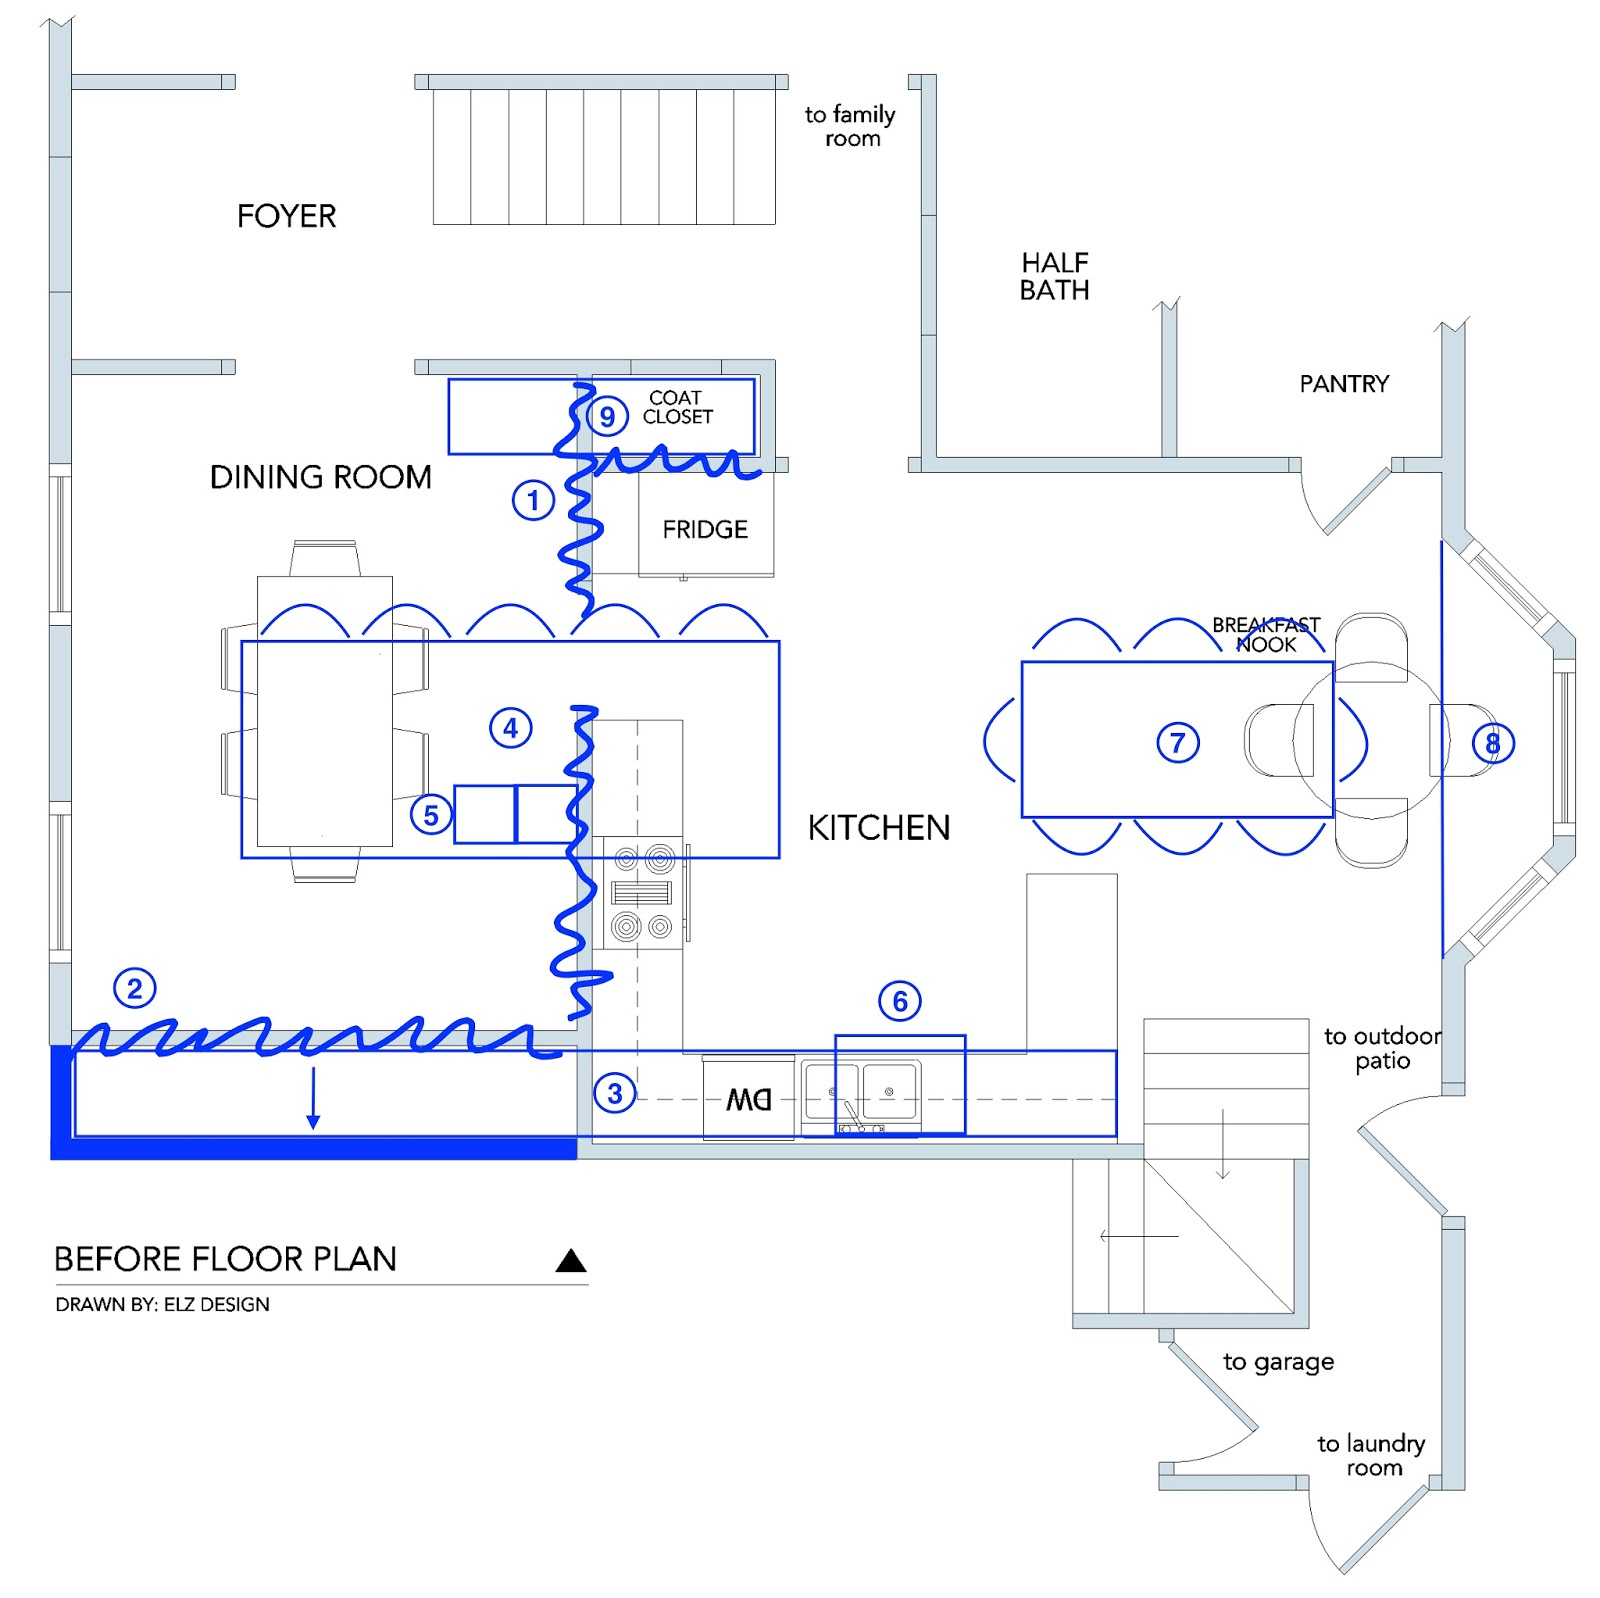 Remove Wall Separating Kitchen And Dining Room To Open The Kitchen Up And Create More Space 2 Push Back Dining Room Wall To Make Even With Kitchen Wall